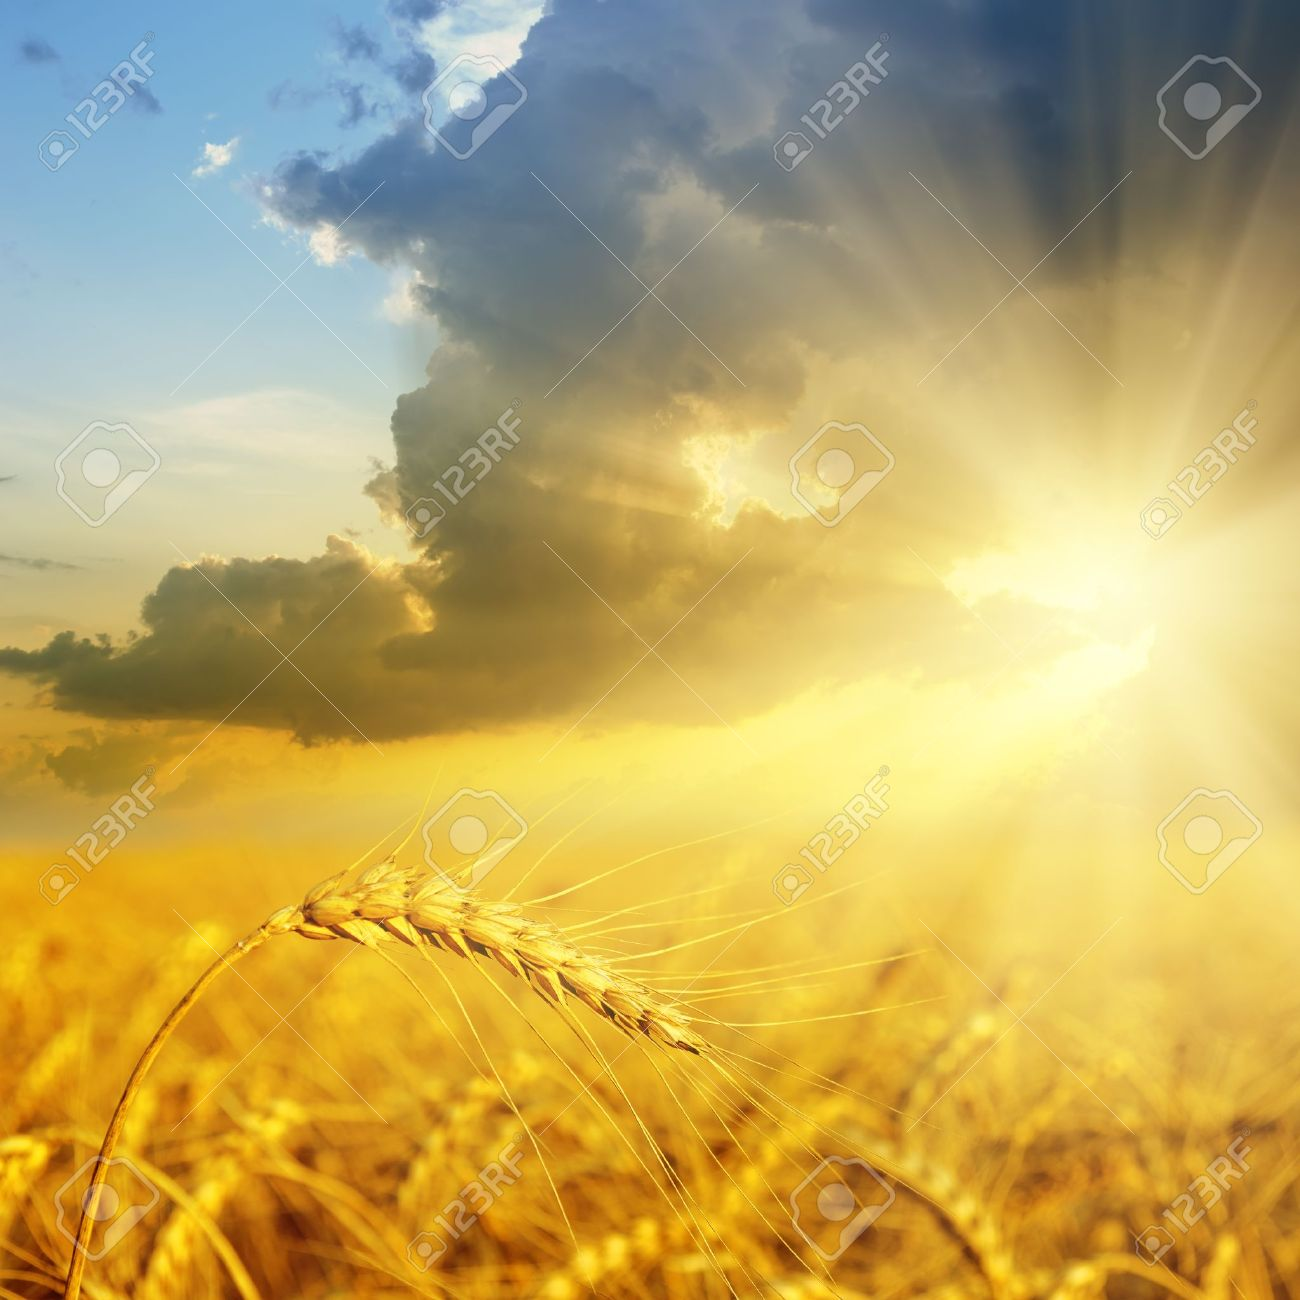 field with gold ears of wheat in sunset Stock Photo - 10706412